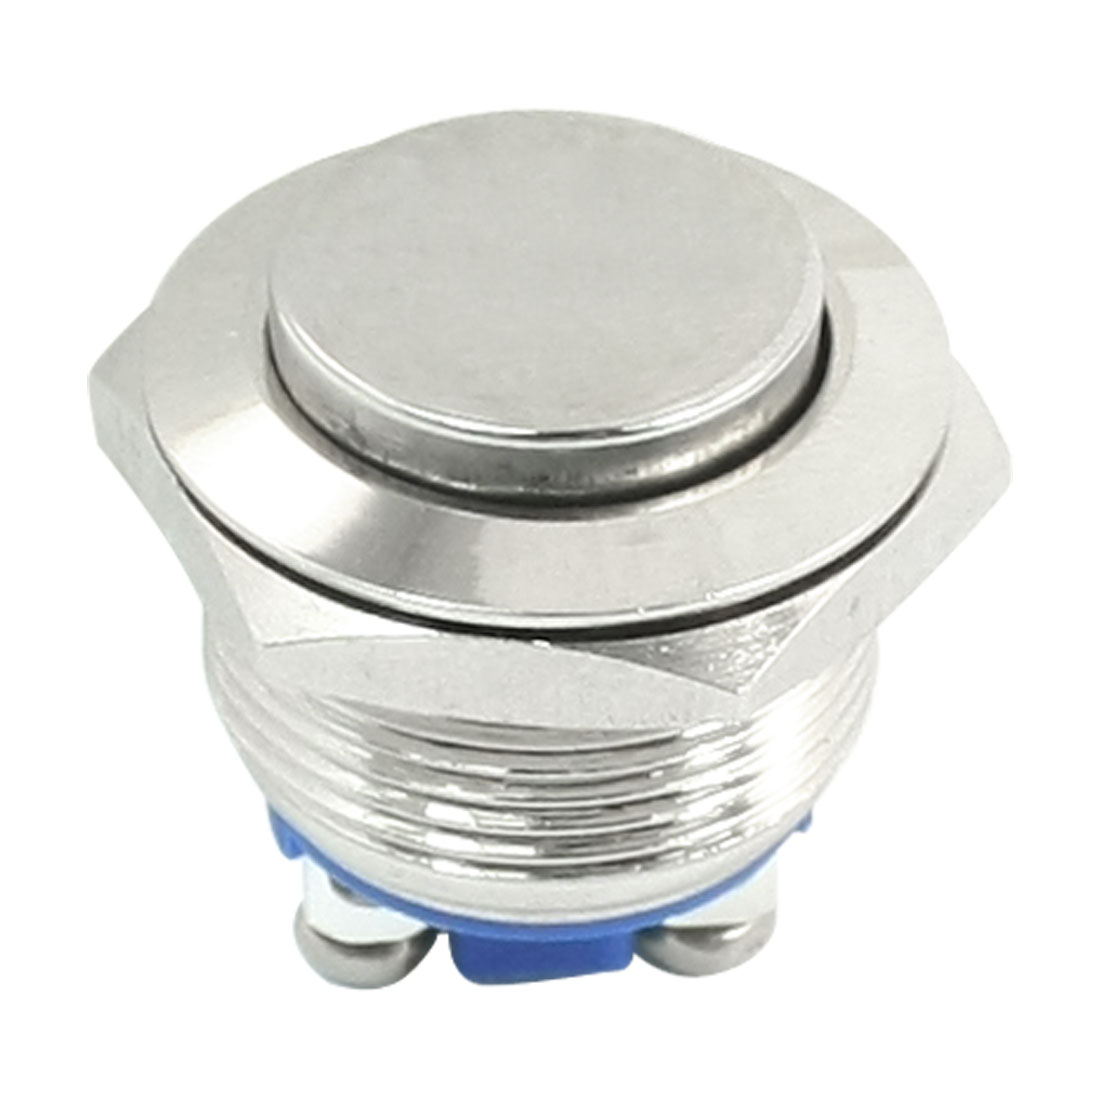 AC 250V 3A 19mm Thread Flush Mounted SPST High Flat Head Momentary Metal Pushbutton Switch